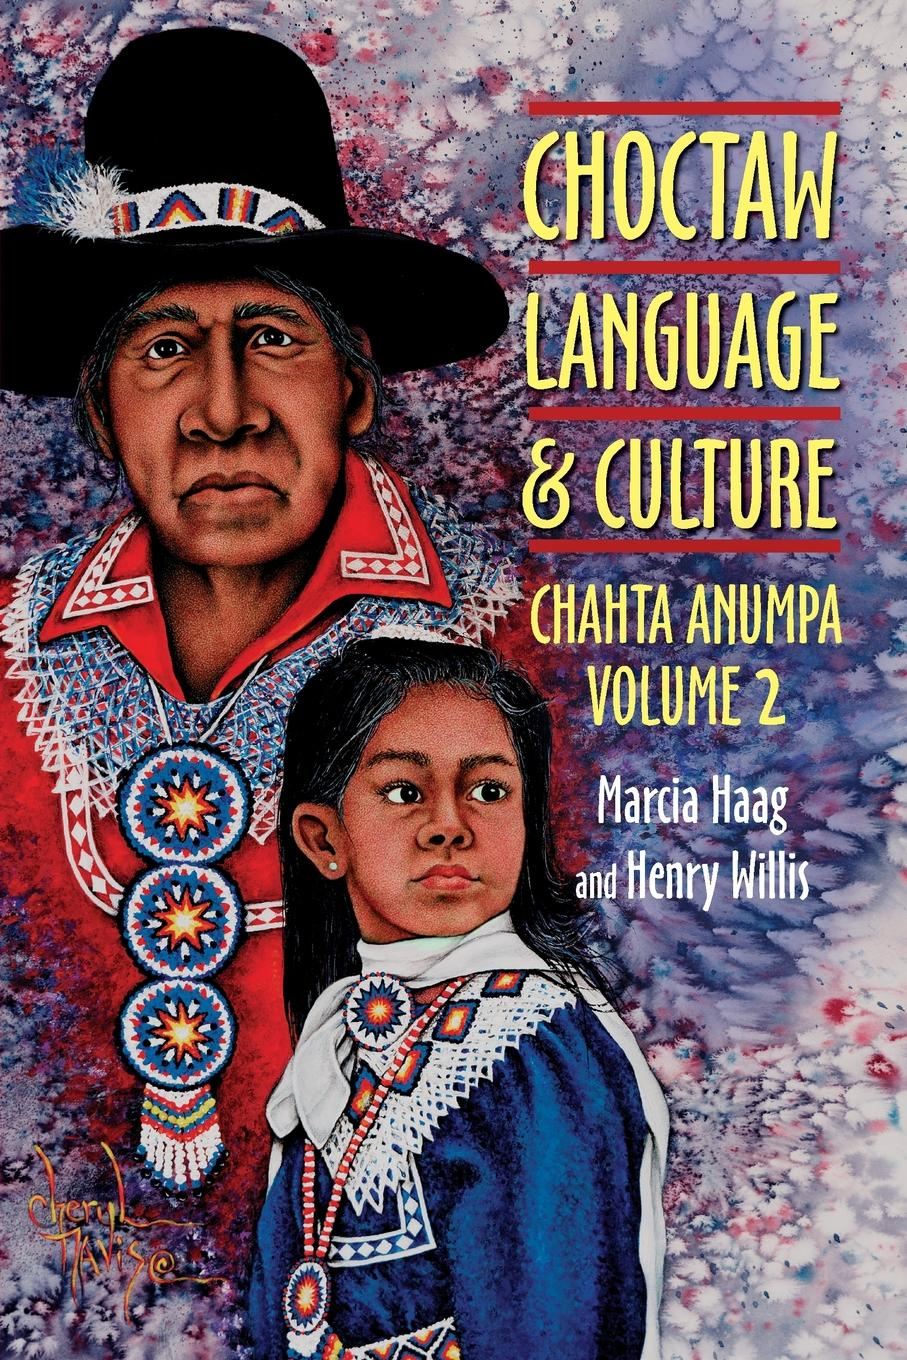 Marcia Haag, Henry Willis Choctaw Language and Culture. Chahta Anumpa, Vol. 2 printer park hill cherokee john candy the constitution and laws of the choctaw nation 1840